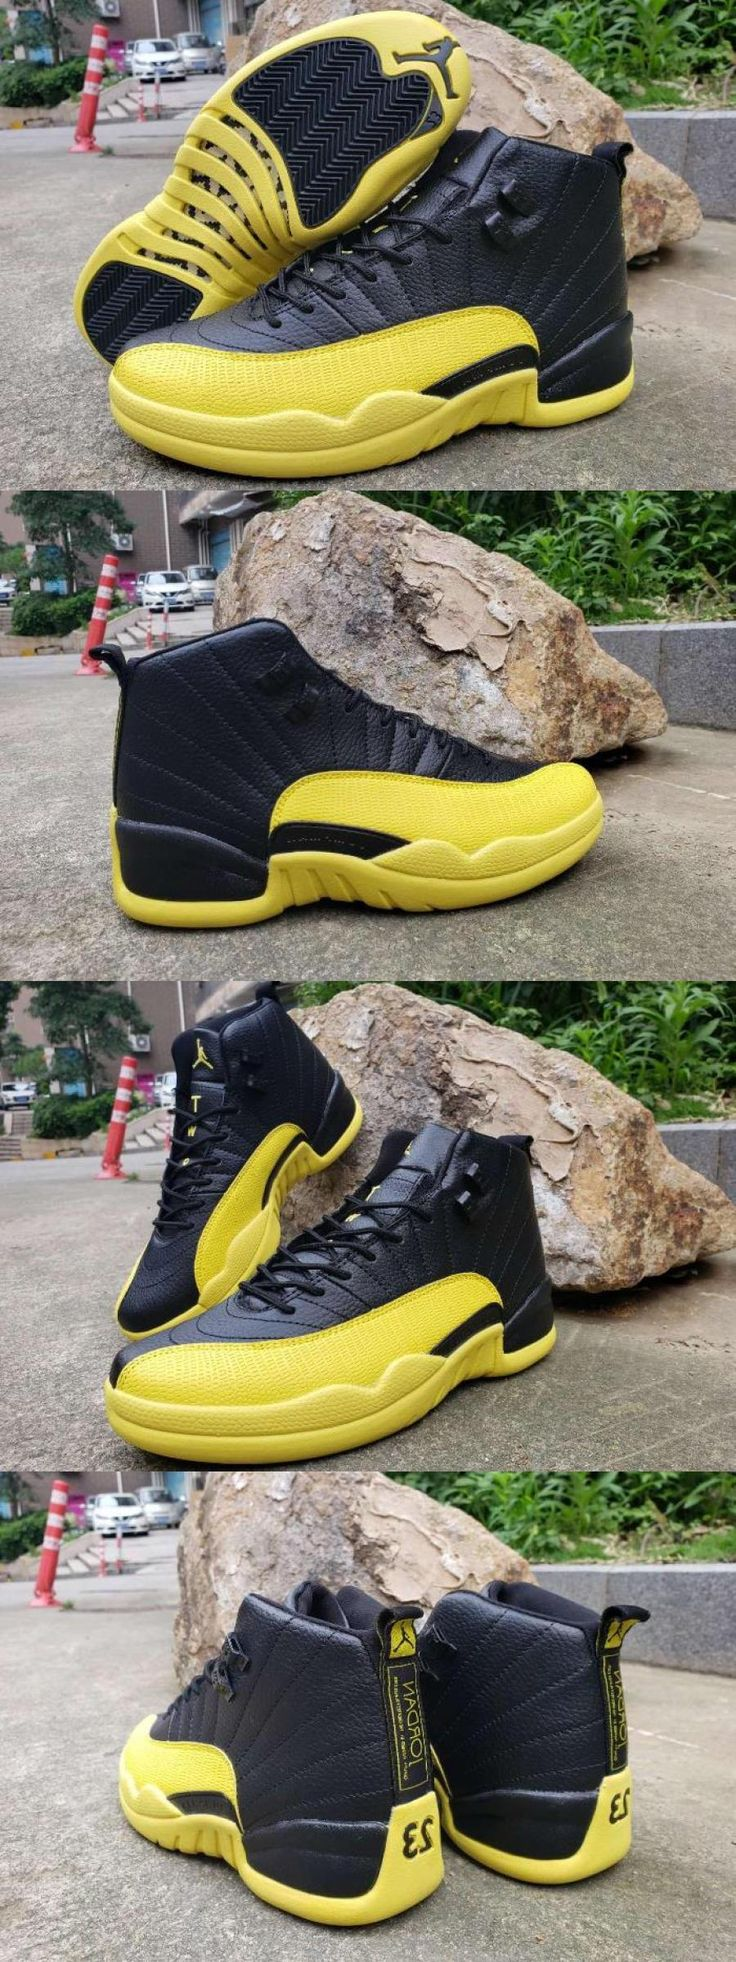 "2020 的 Air Jordan 12 ""bumblebee"" Black Yellow For 主题"